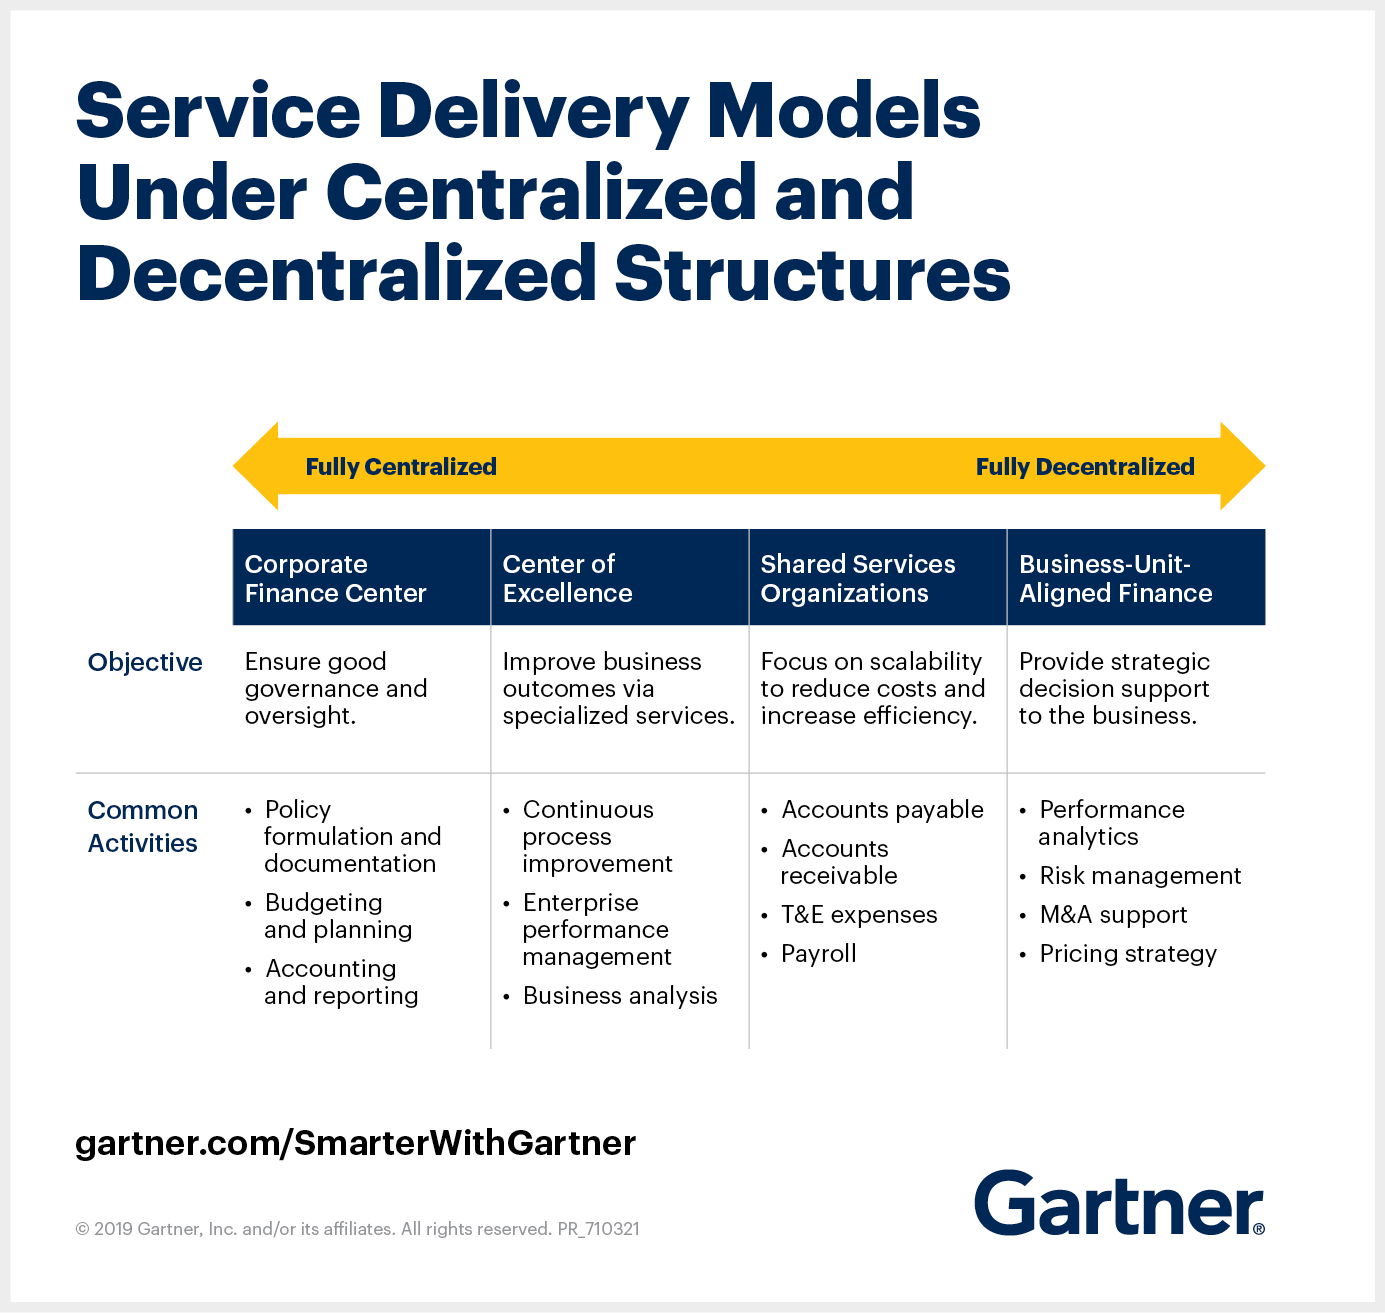 Service Delivery Models Under Centralized and Decentralized Structures.png